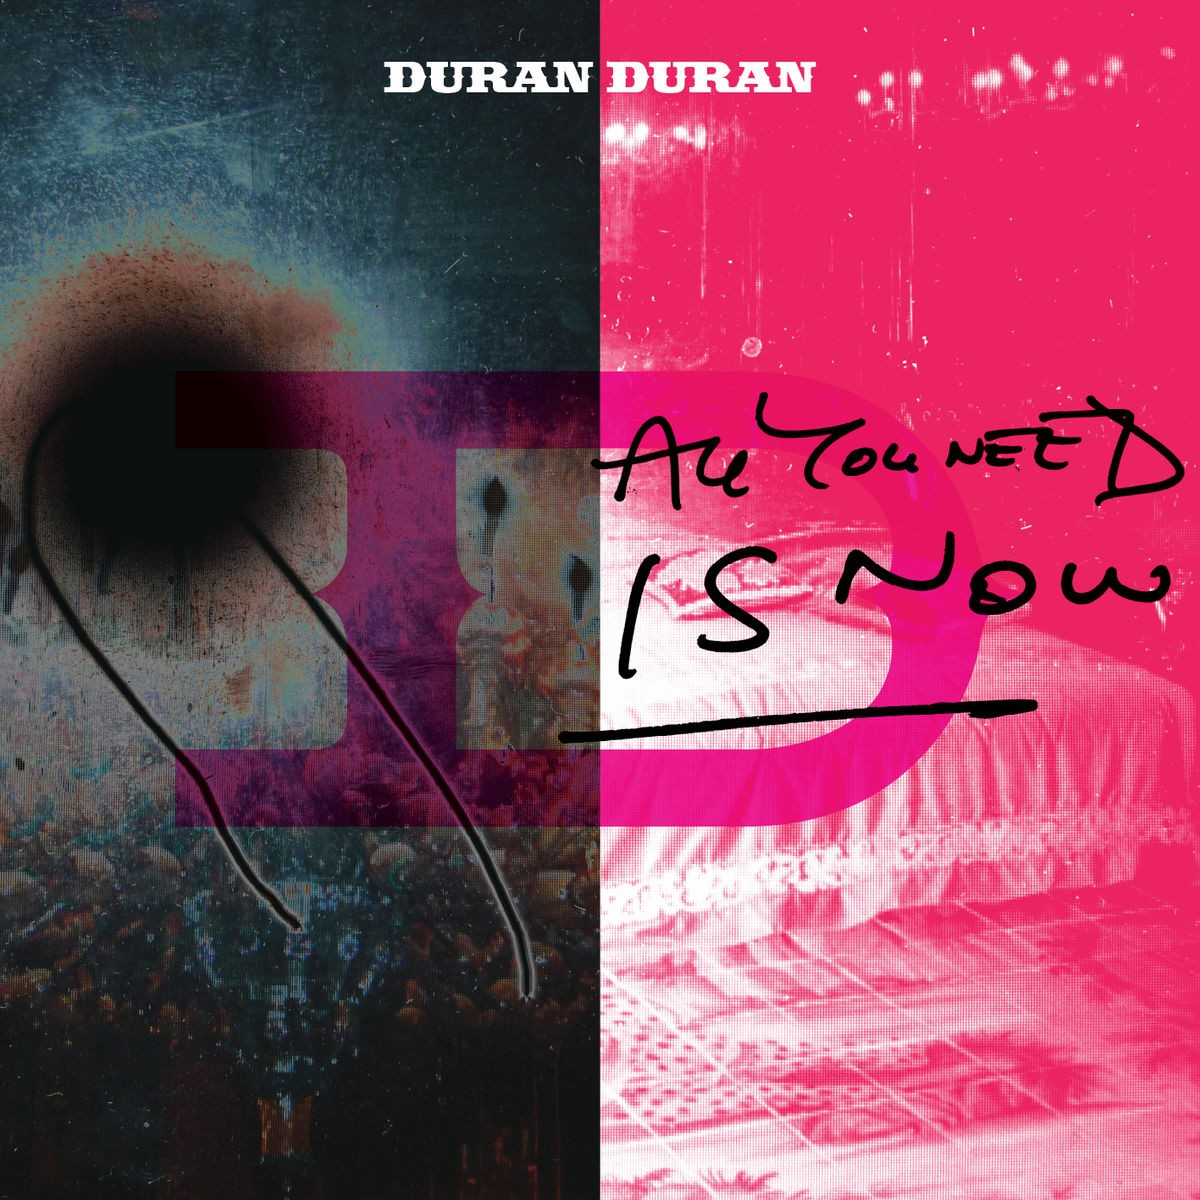 Duran Duran - All You Need Is Now (Deluxe Edition) CD - 5060156652640